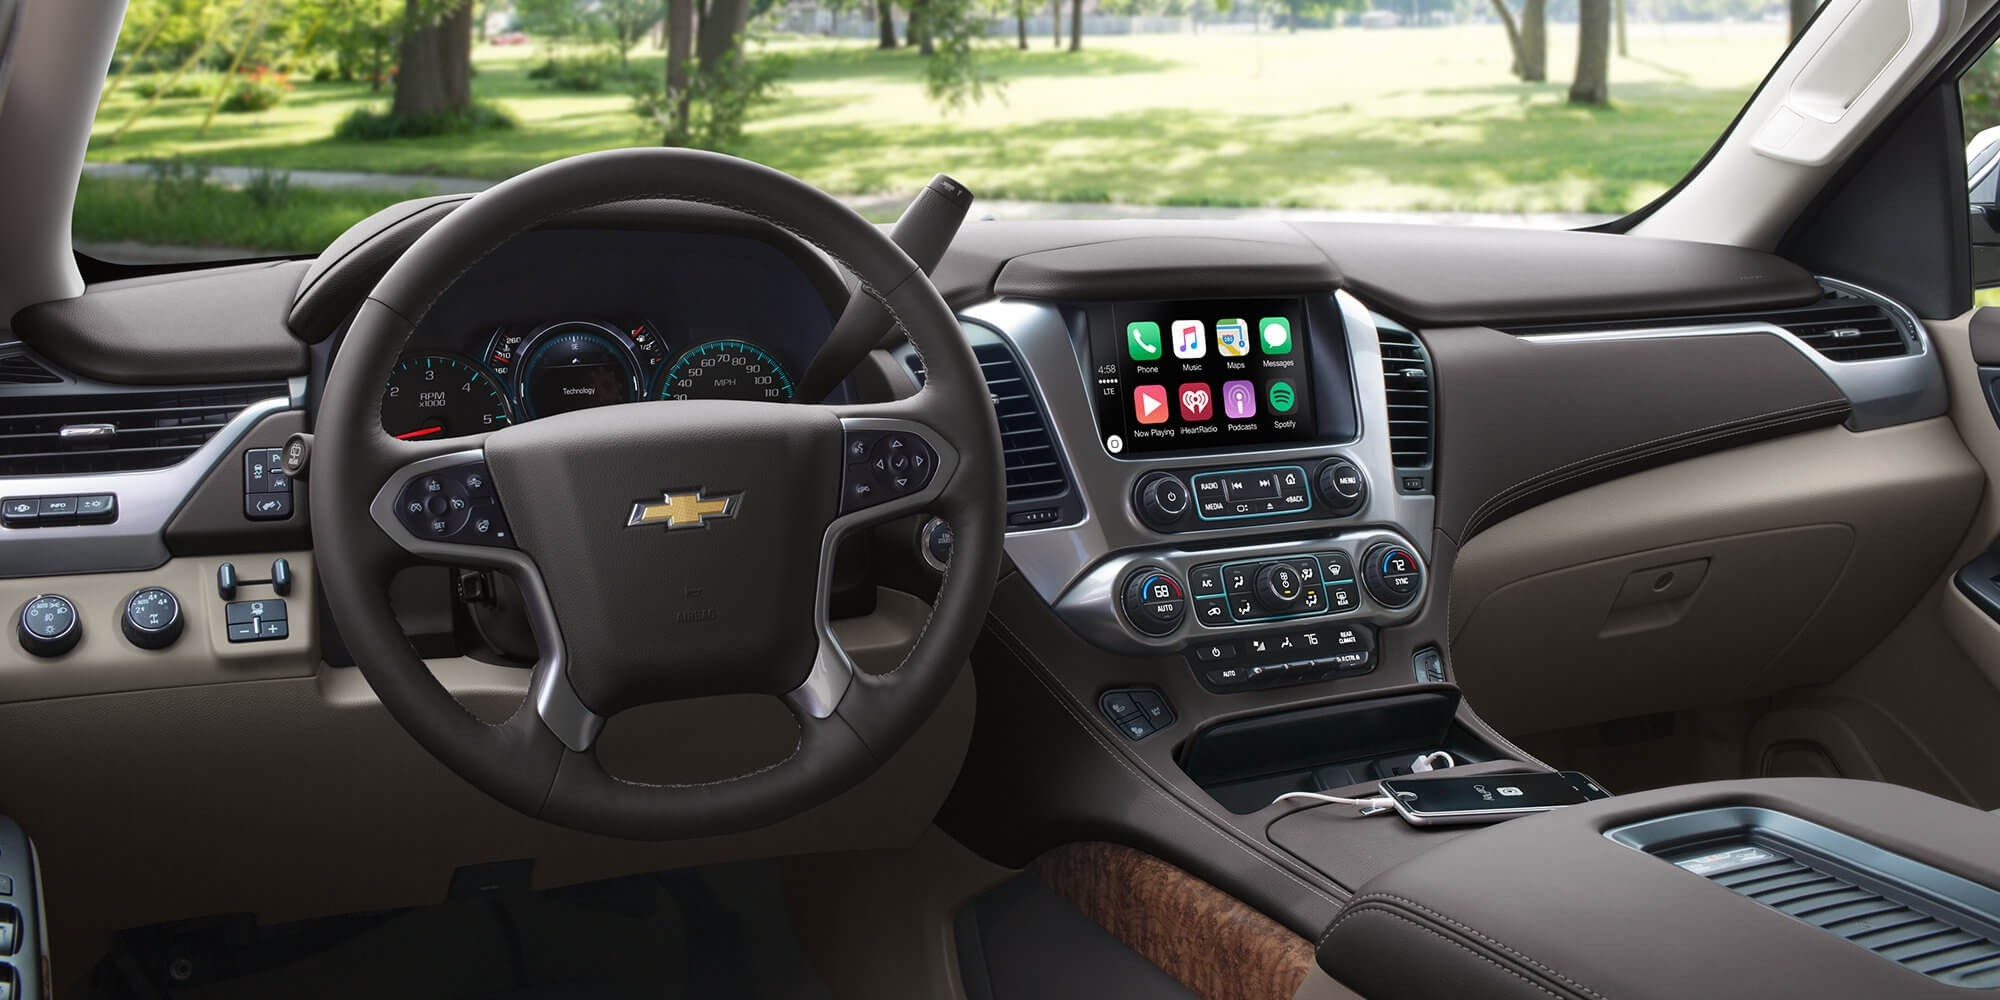 2017 Chevrolet Suburban Dash and Console